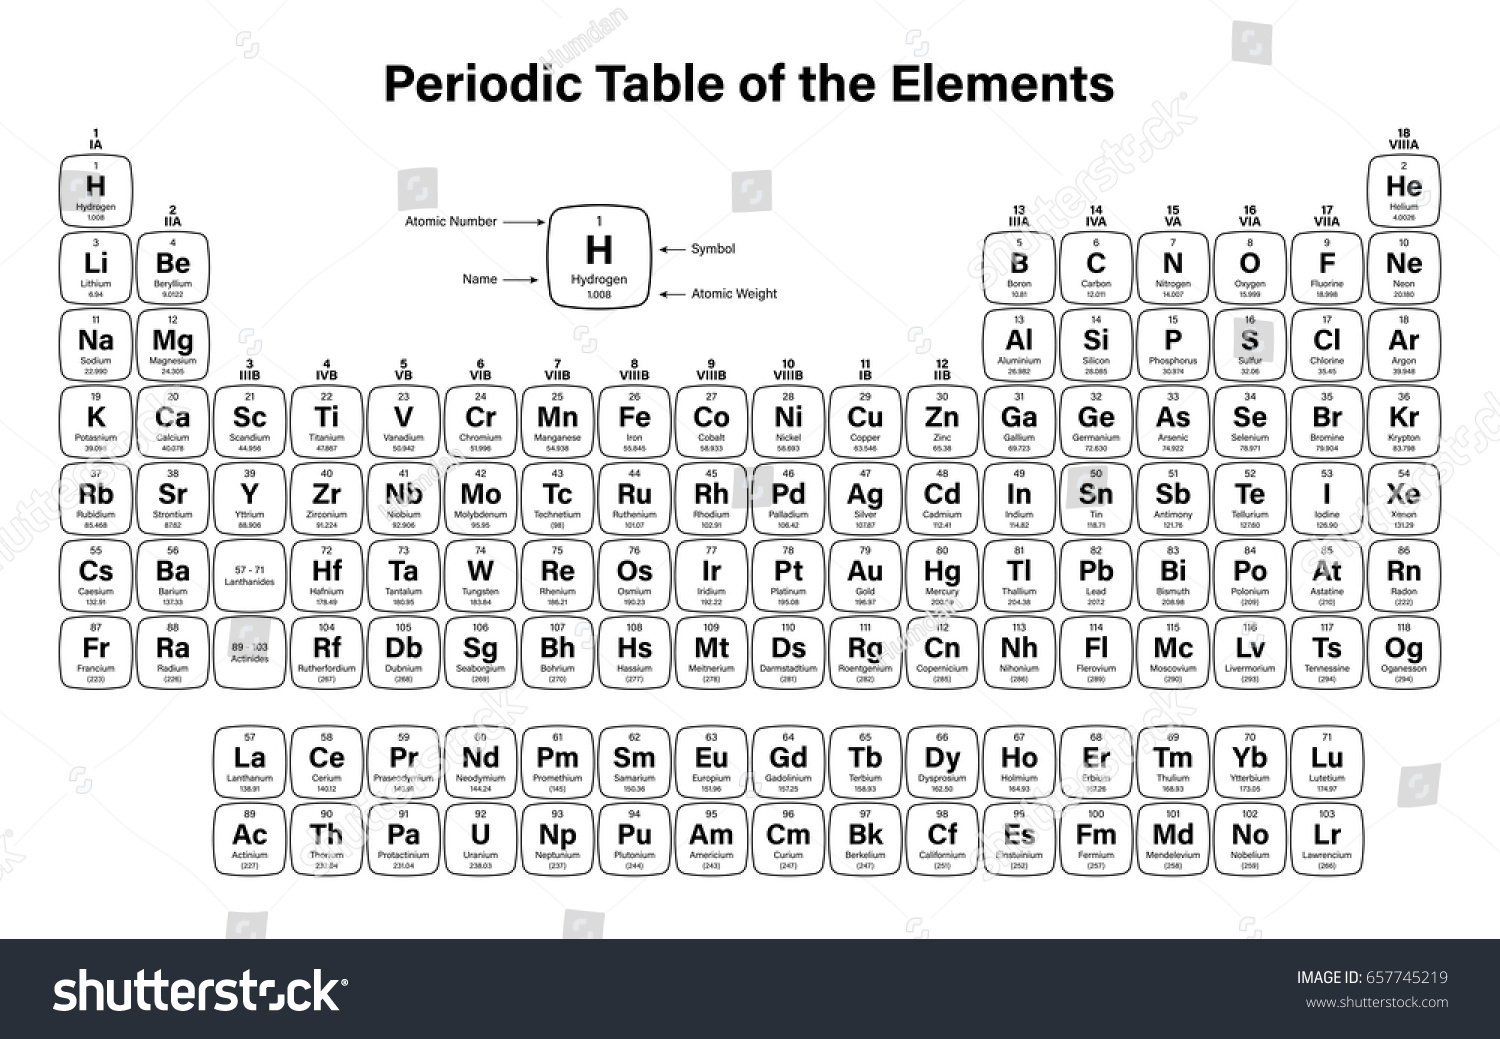 Periodic table elements vector illustration shows stock vector periodic table of the elements vector illustration shows atomic number symbol name and gamestrikefo Gallery